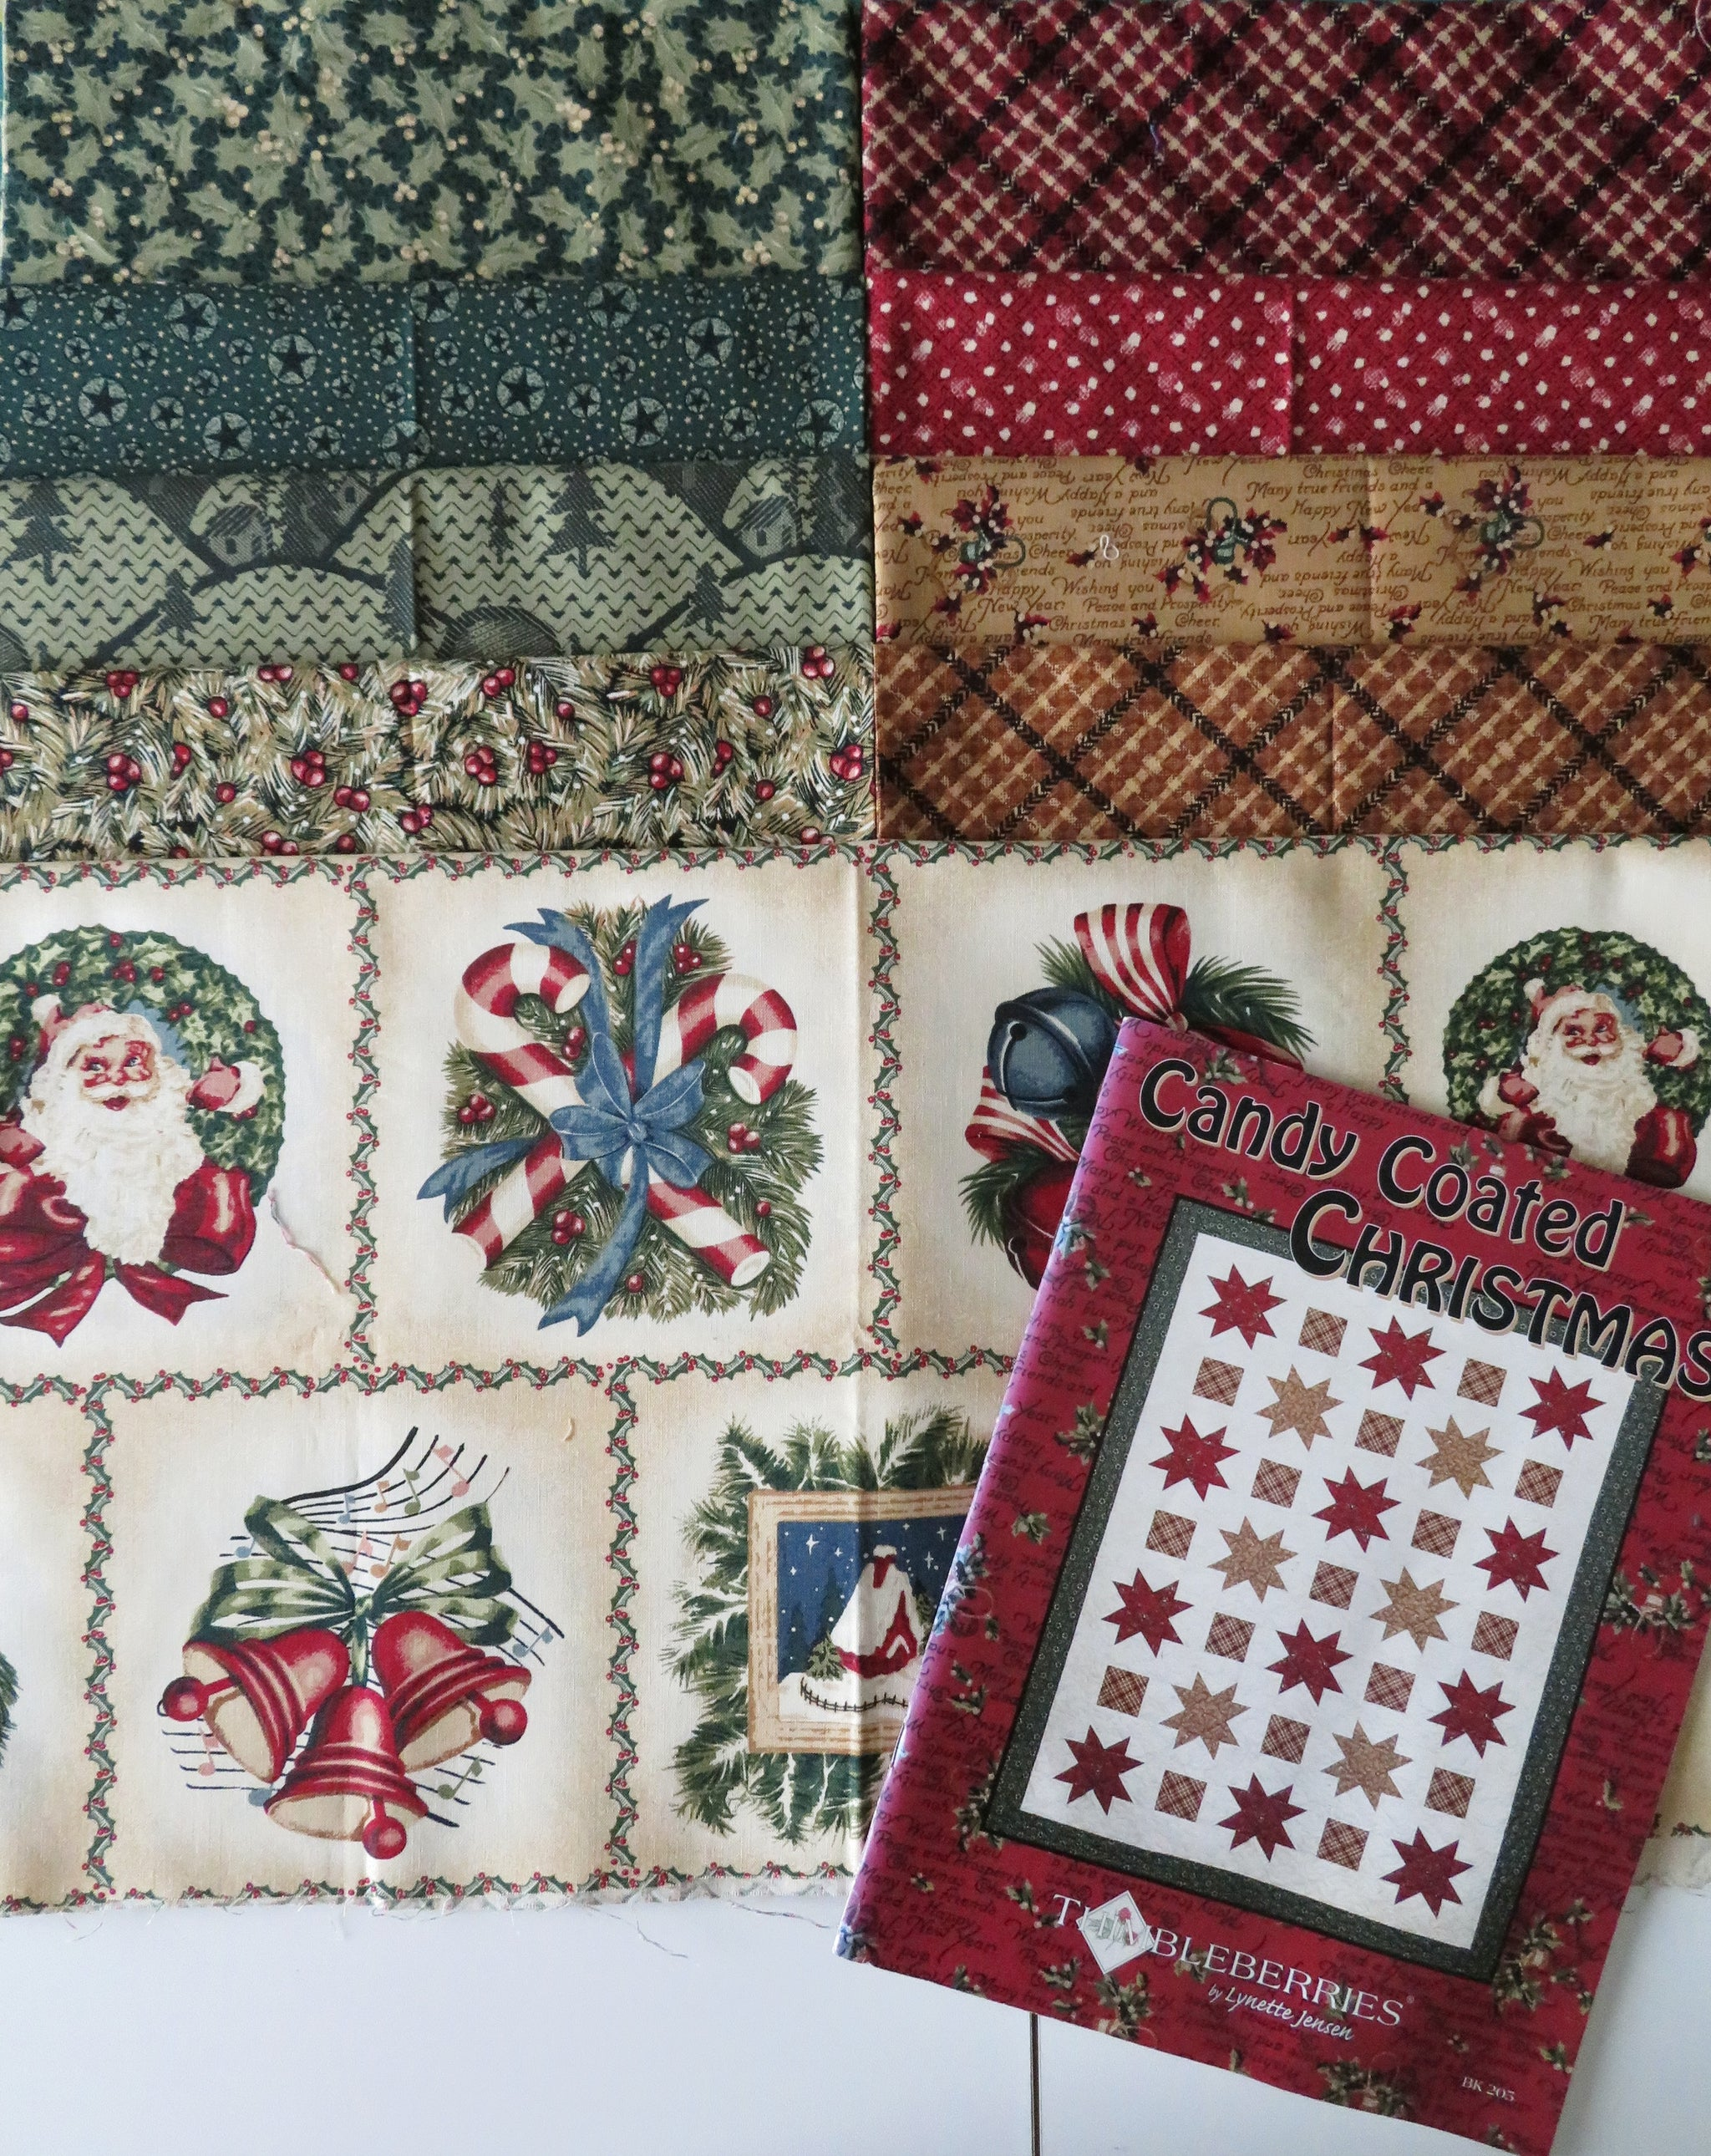 RJR Thimbleberries Candy Coated Christmas Book Fabric Bundle